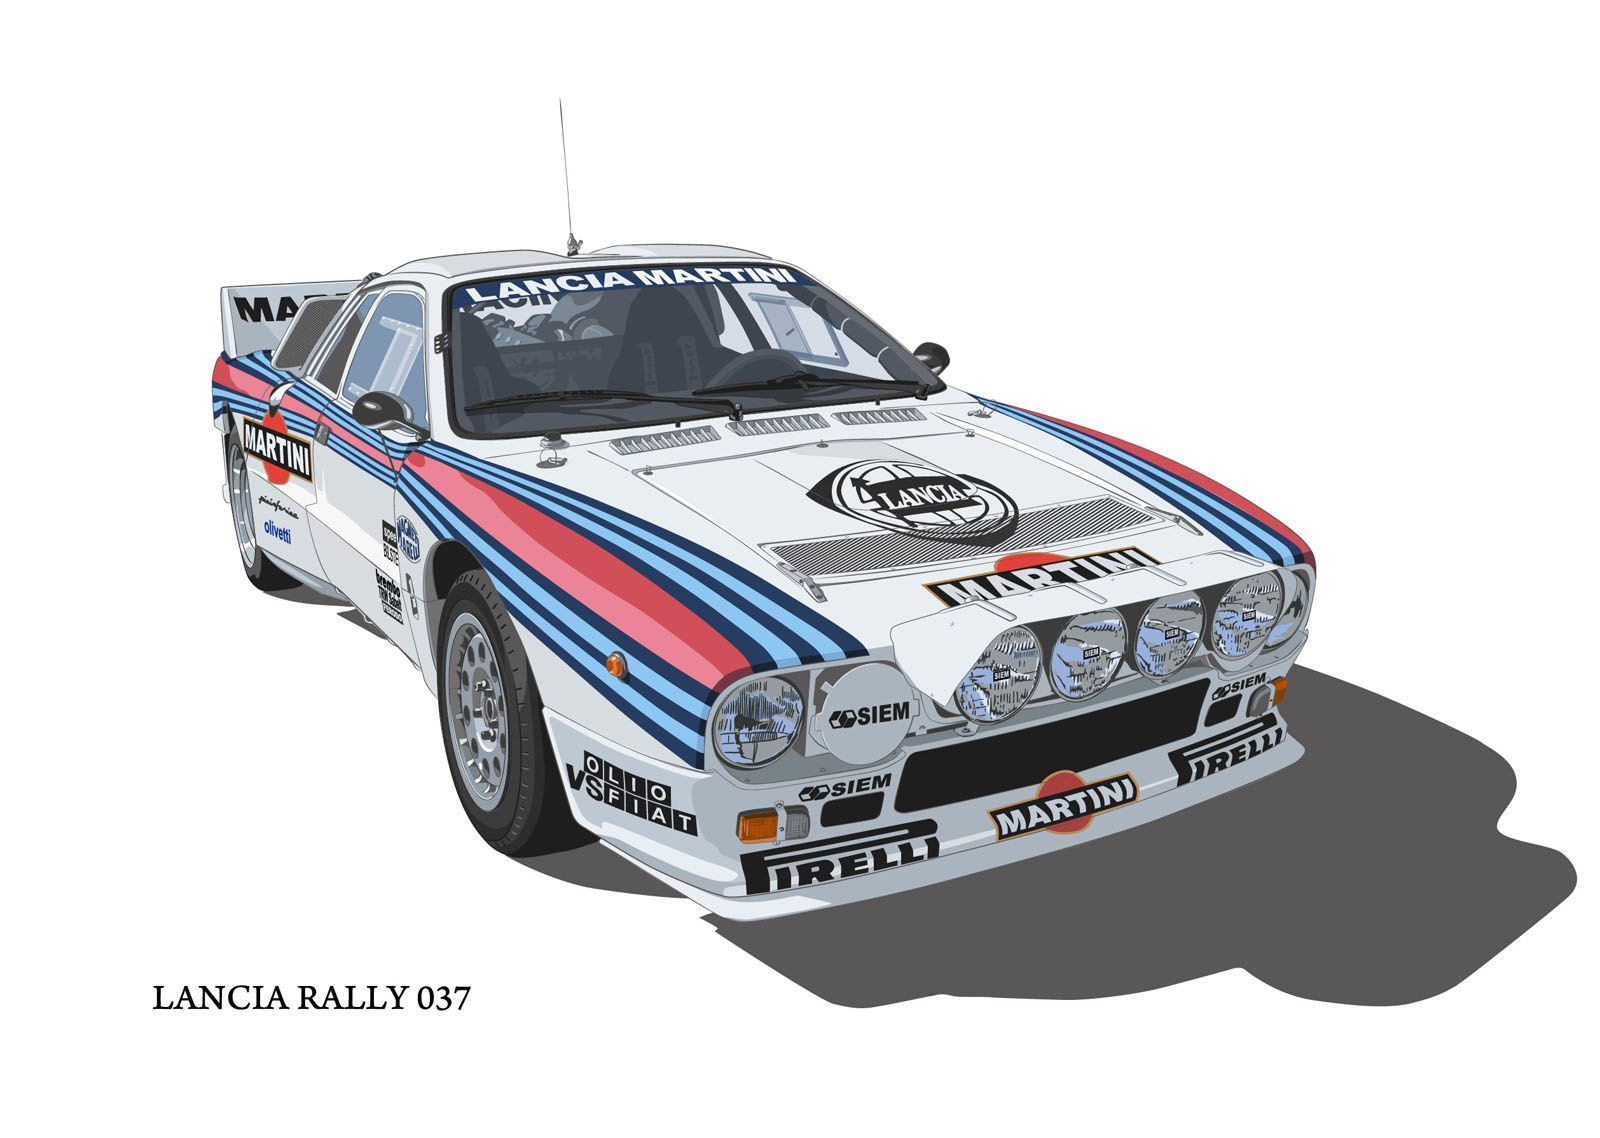 lancia rally 037 lancia pinterest rally cars and lancia delta. Black Bedroom Furniture Sets. Home Design Ideas